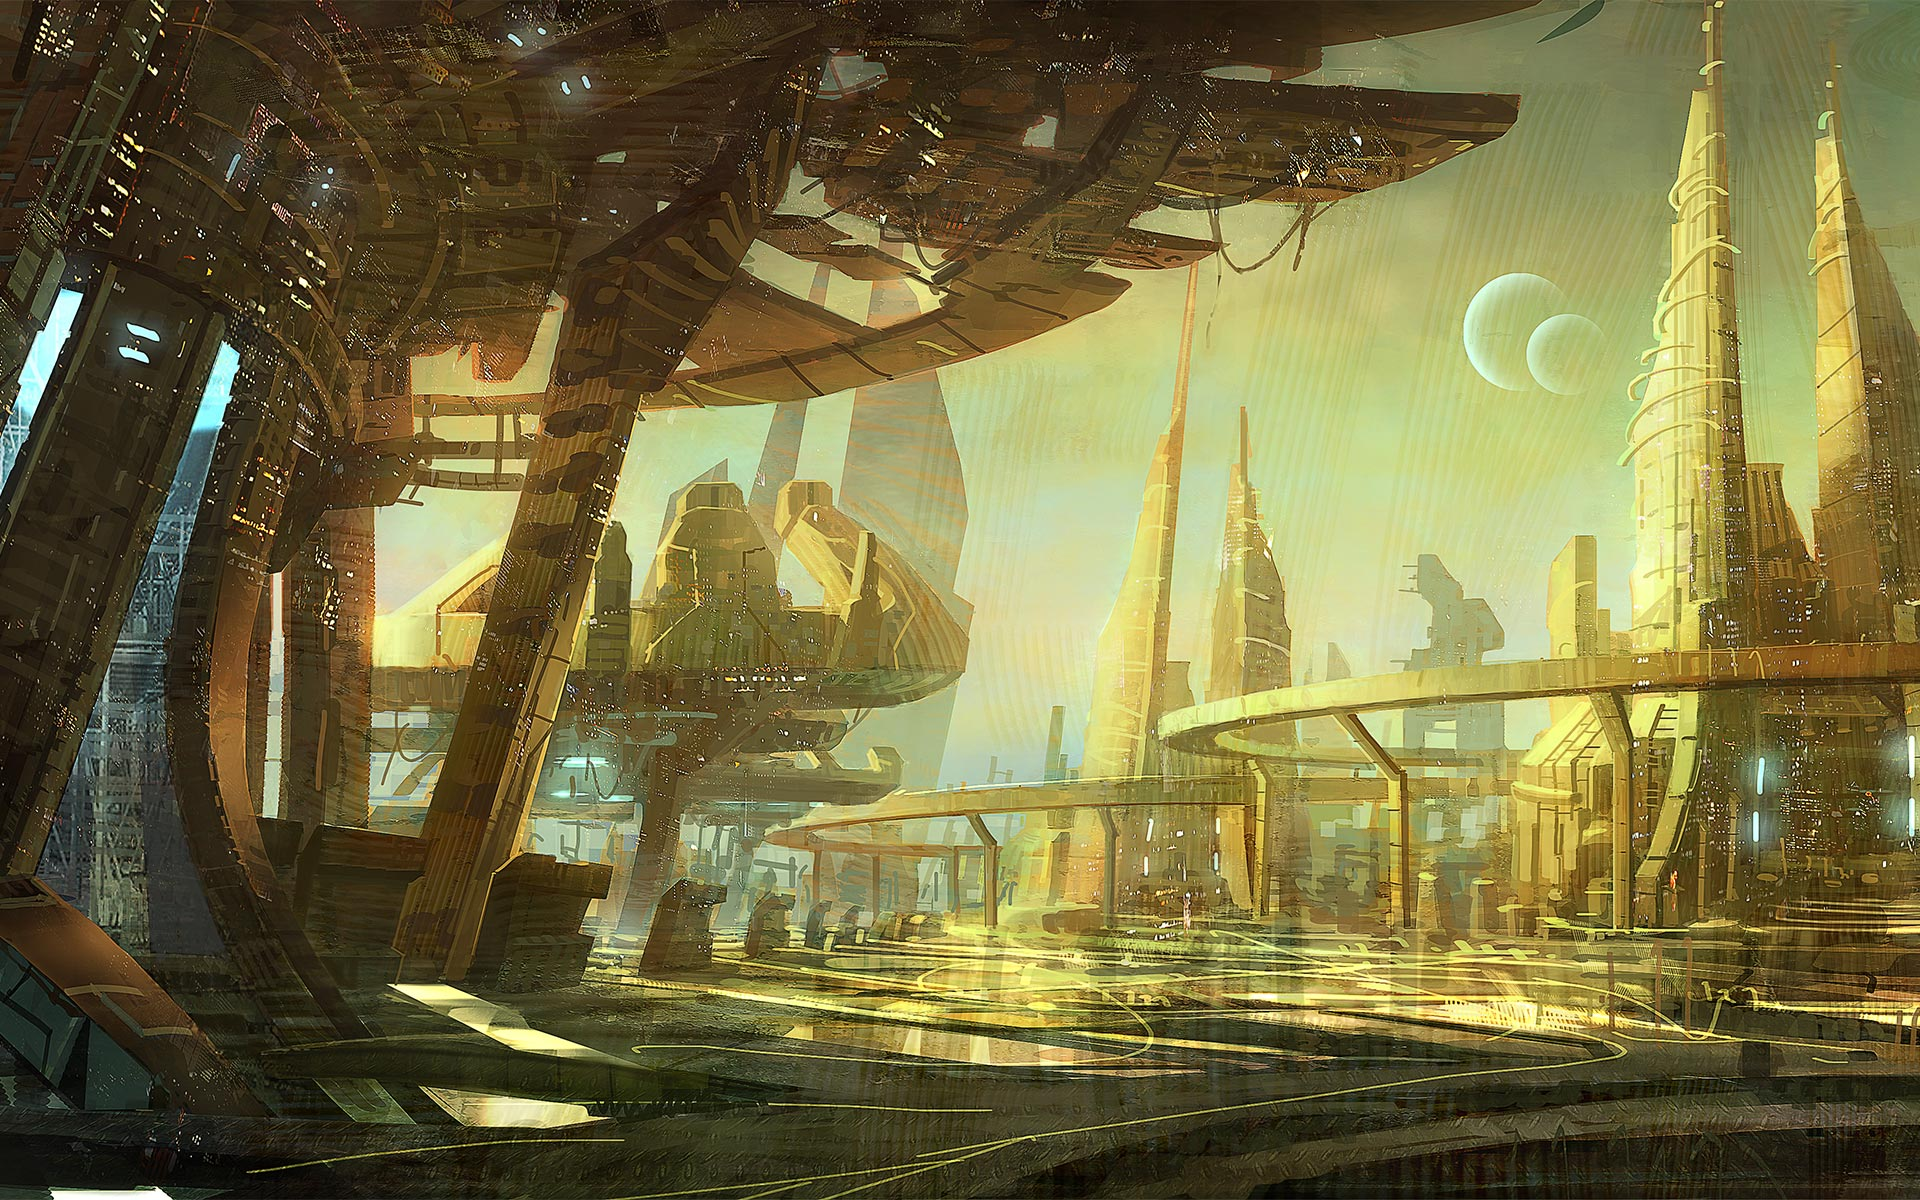 Illustration of a futuristic sci-fi city